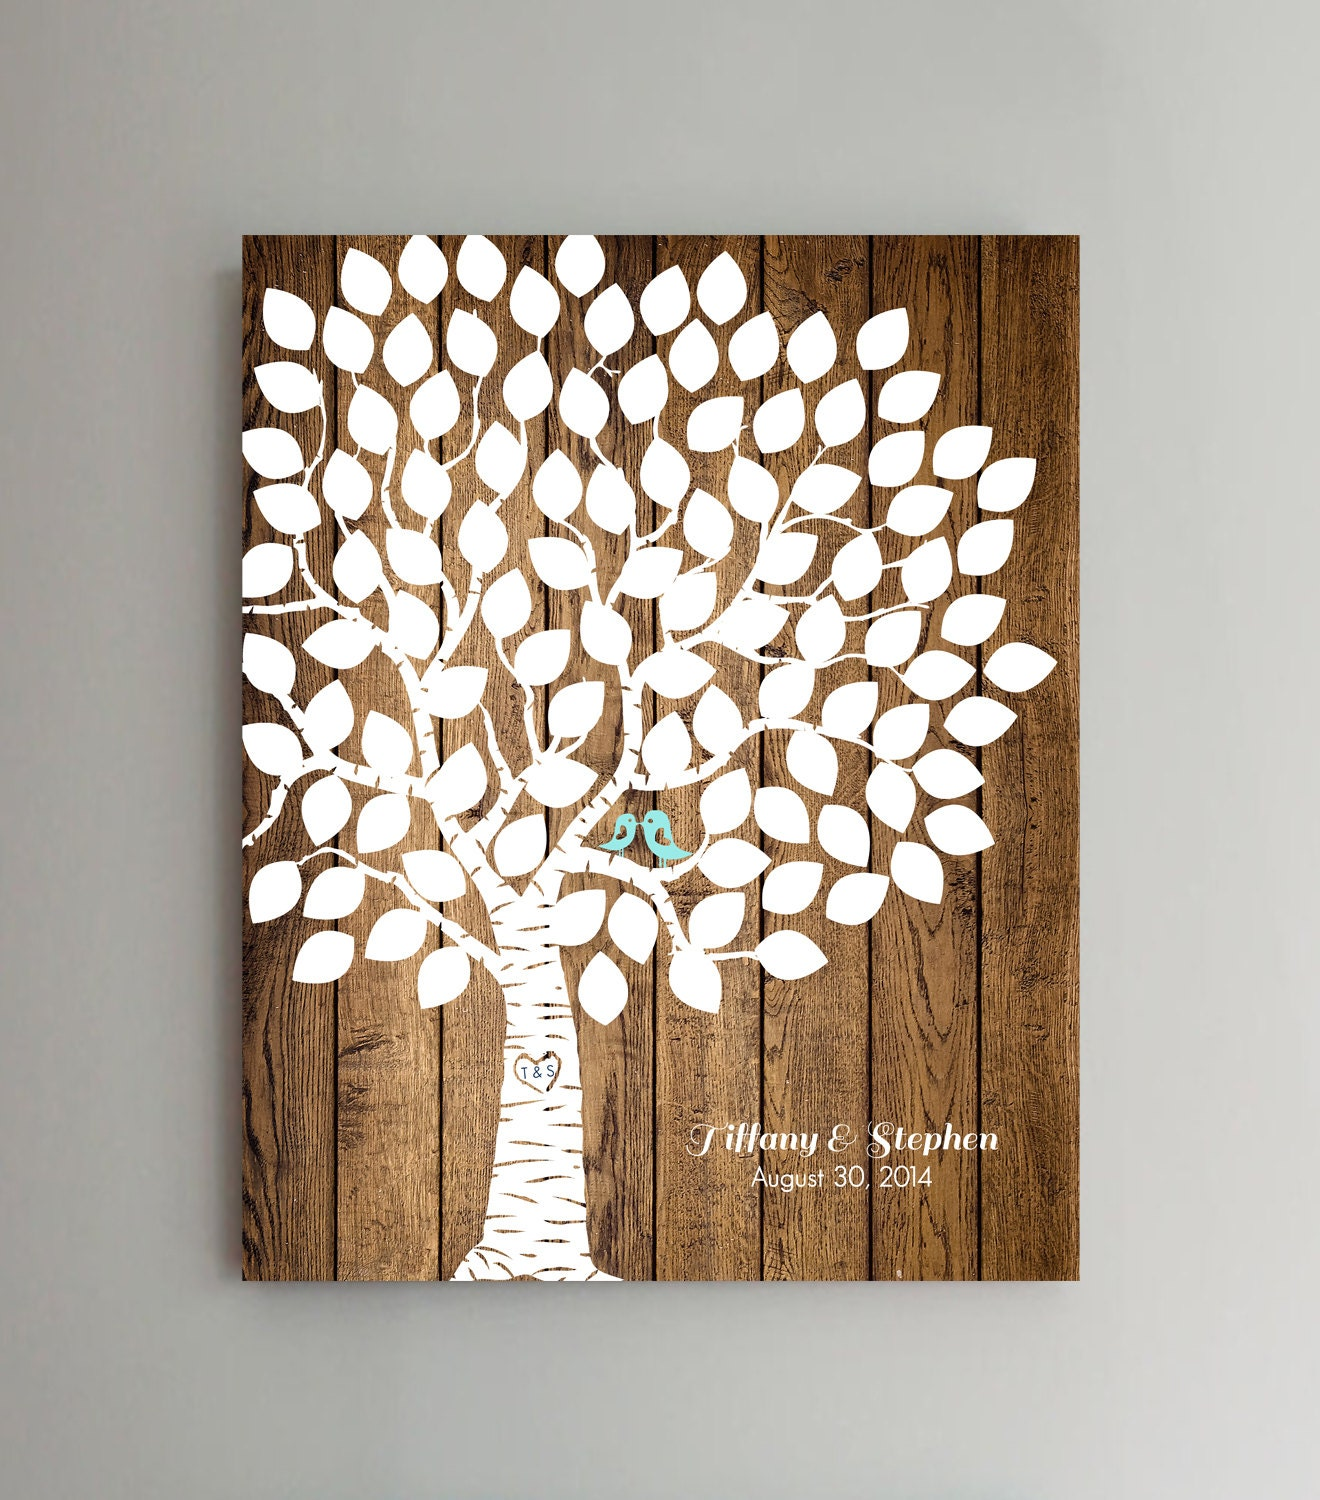 100 Guest Wedding Guest Book Wood Wedding Tree Wedding